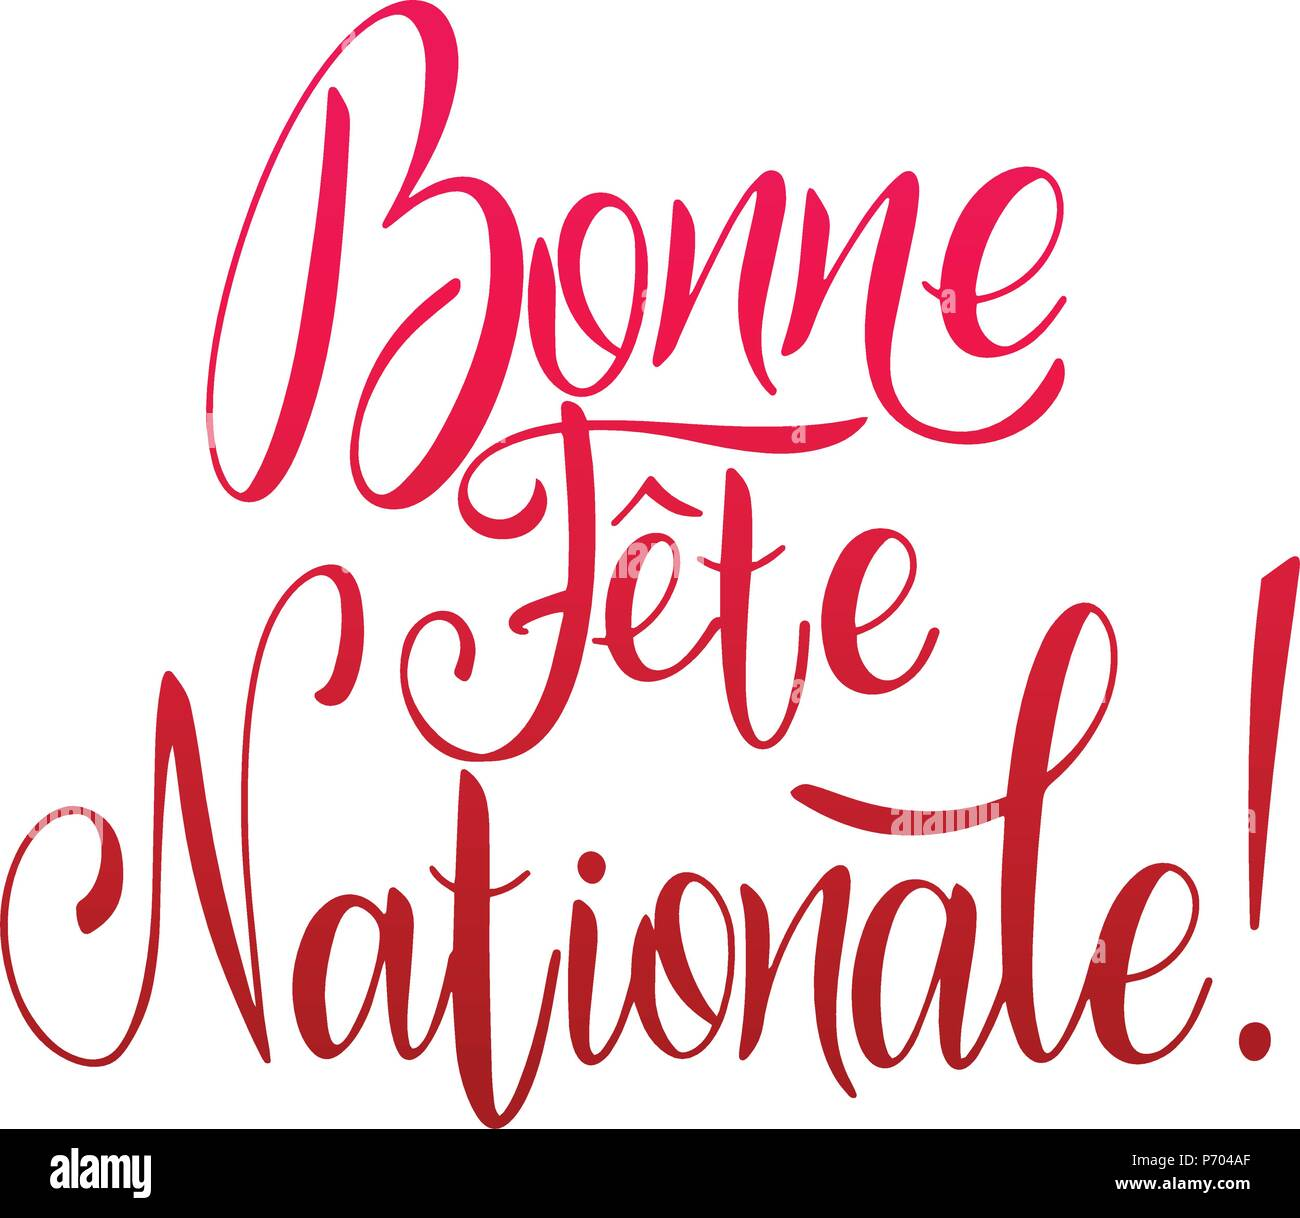 Bastille day hand drawn lettering happy national day on french bastille day hand drawn lettering happy national day on french bonne fete nationale vector elements for invitations posters greeting cards m4hsunfo